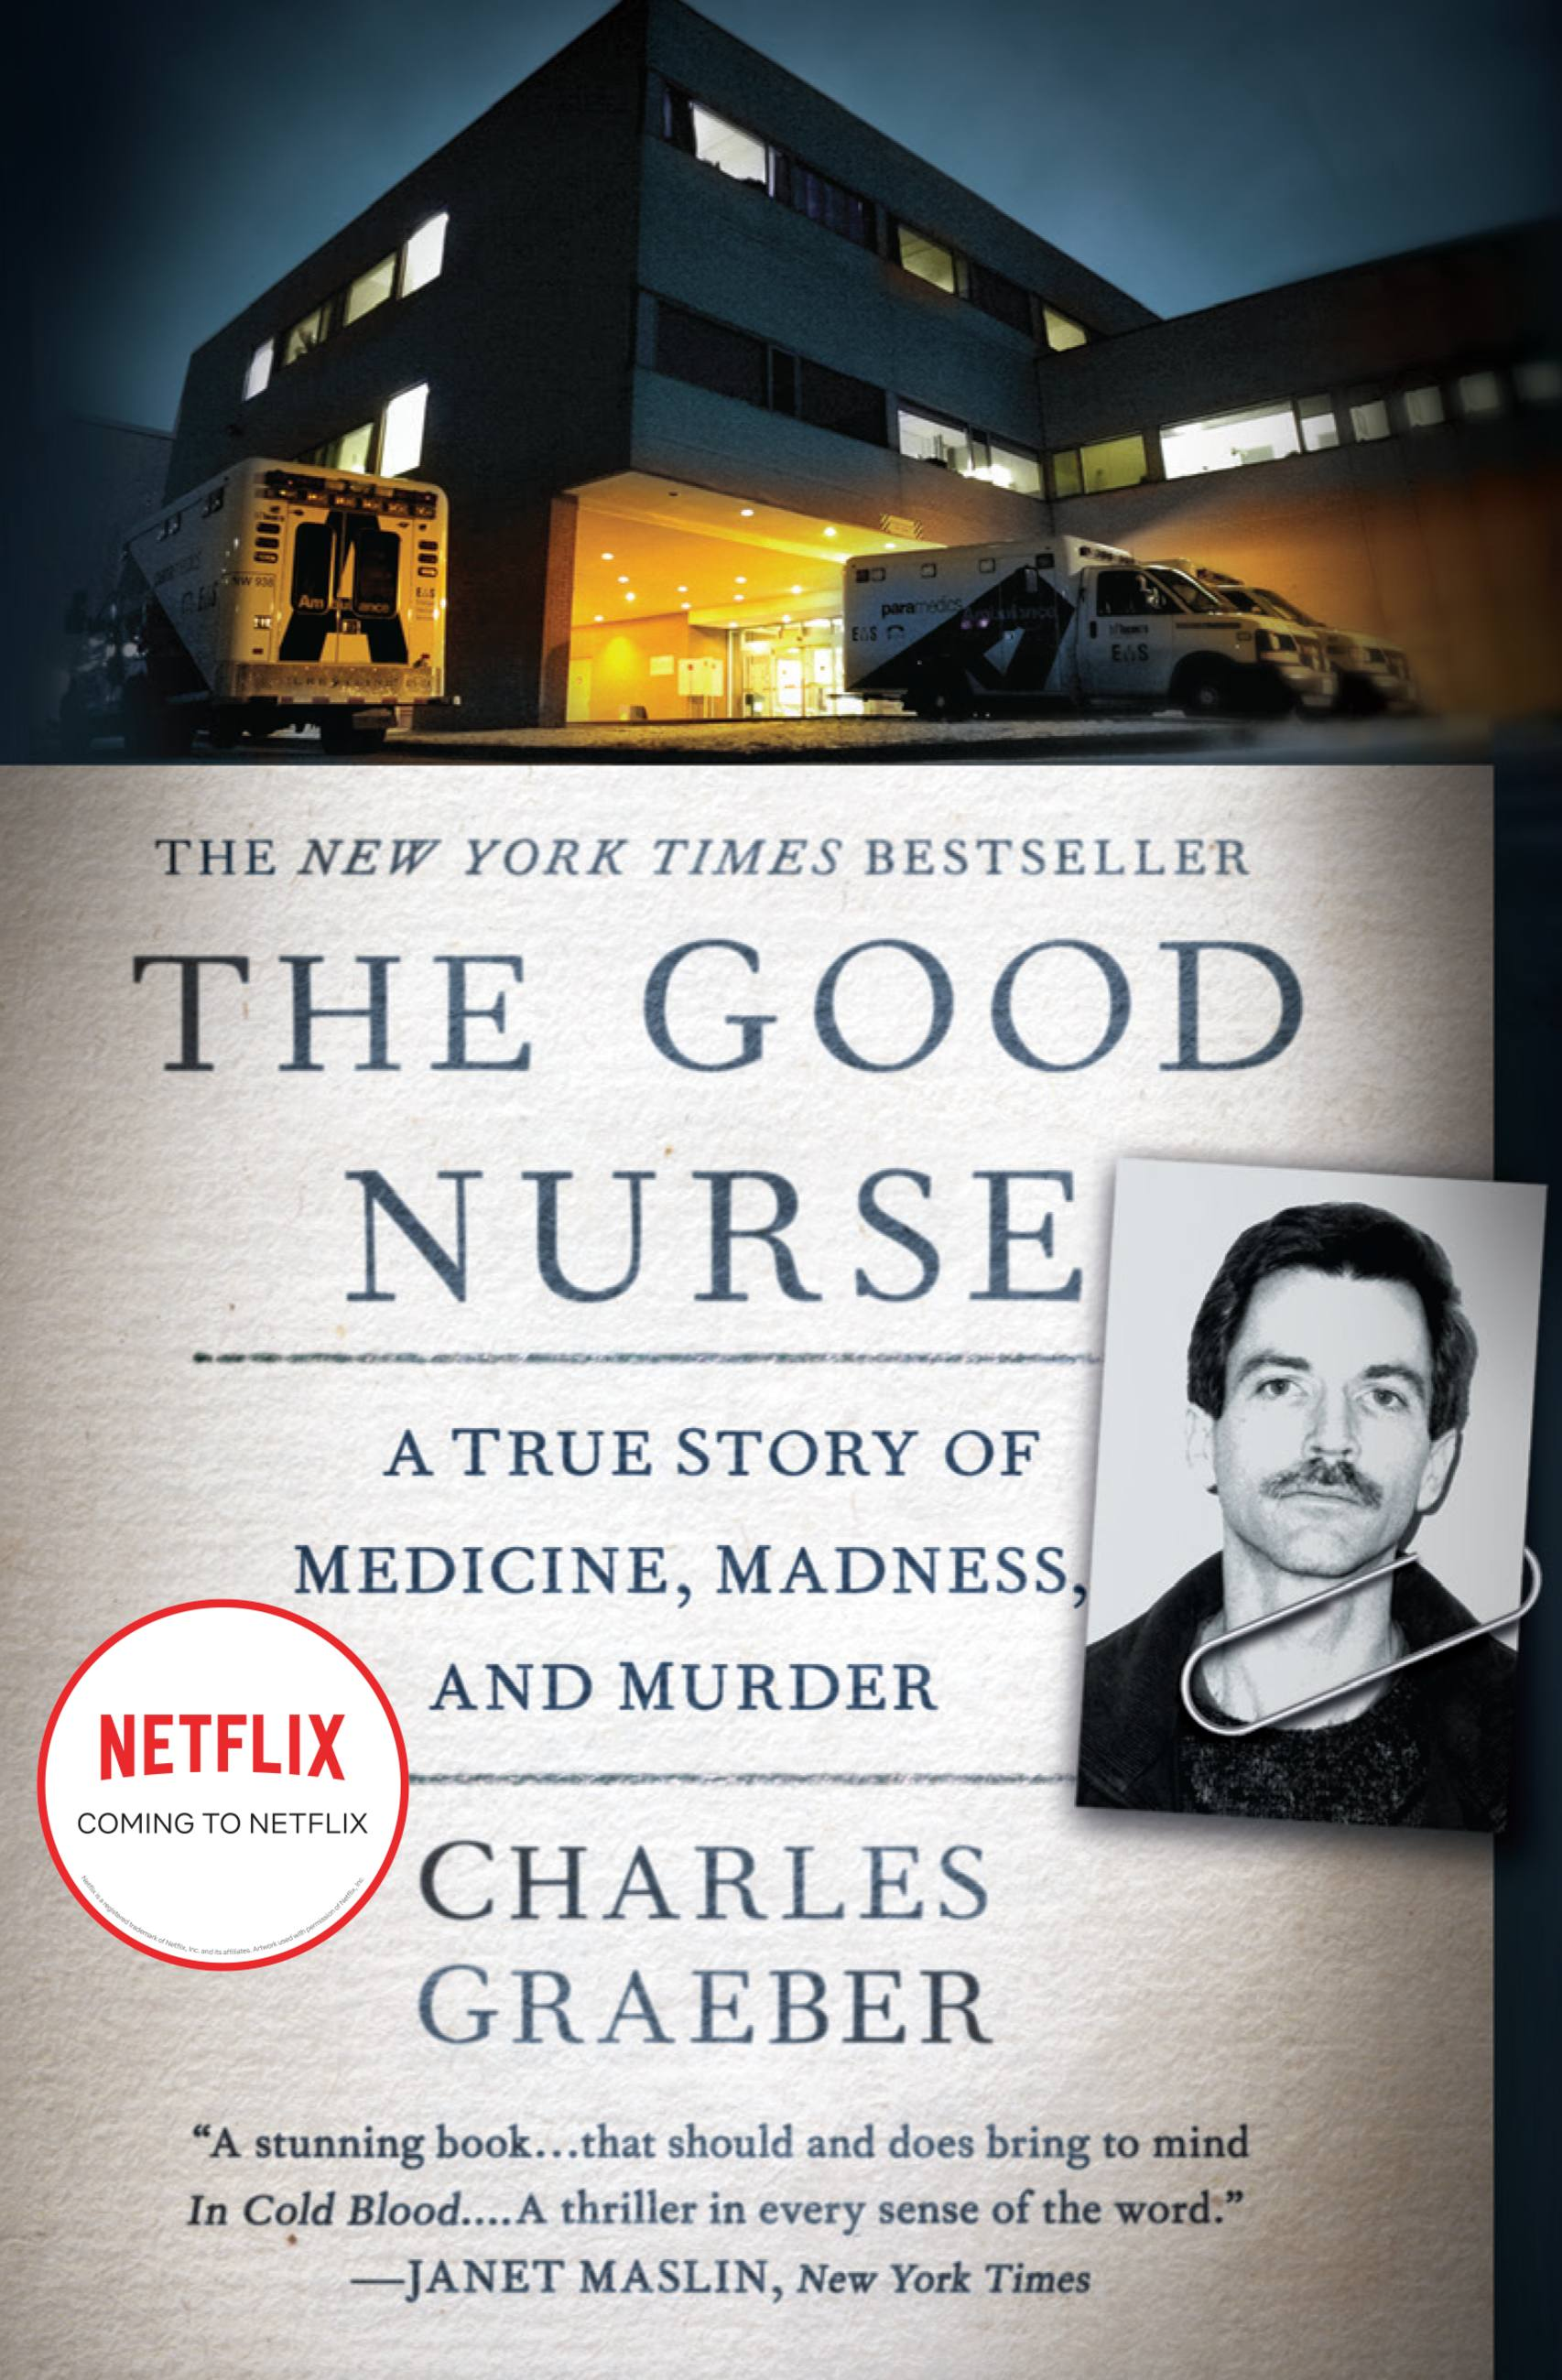 The Good Nurse A True Story of Medicine, Madness, and Murder